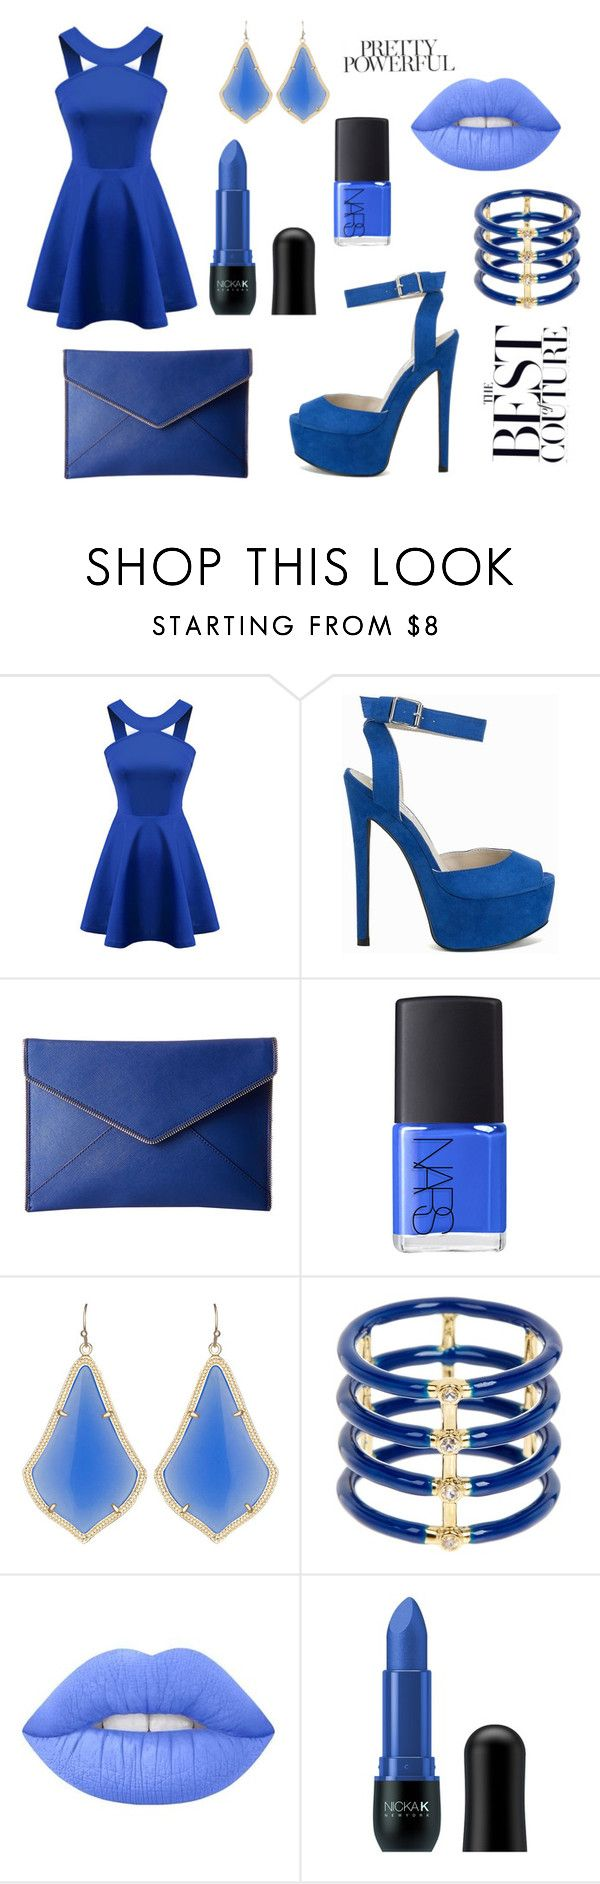 Untitled #9 by naomi-emmanuelle on Polyvore featuring Chicnova Fashion, Nly Shoes, Rebecca Minkoff, Elizabeth and James, Kendra Scott, Lime Crime, Nicka K and NARS Cosmetics